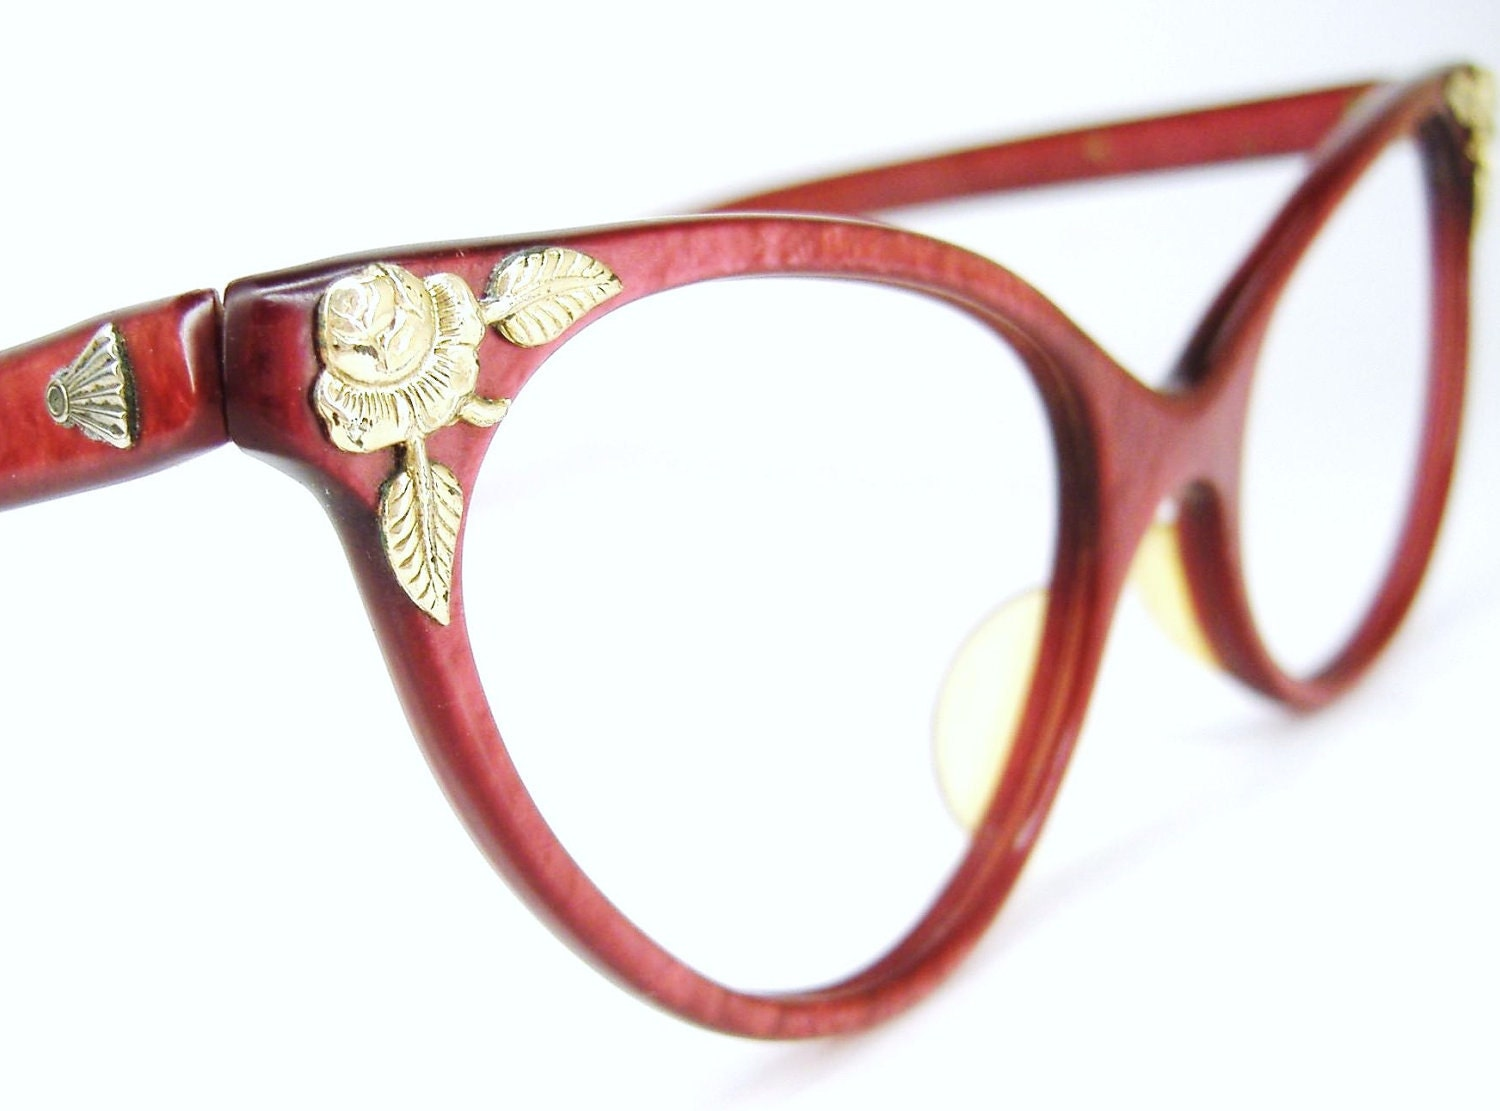 Vintage Eyeglass Frames Cat Eye : Vintage Red Eyeglasses Sunglasses Cat Eye 1950s 1960s Eyewear